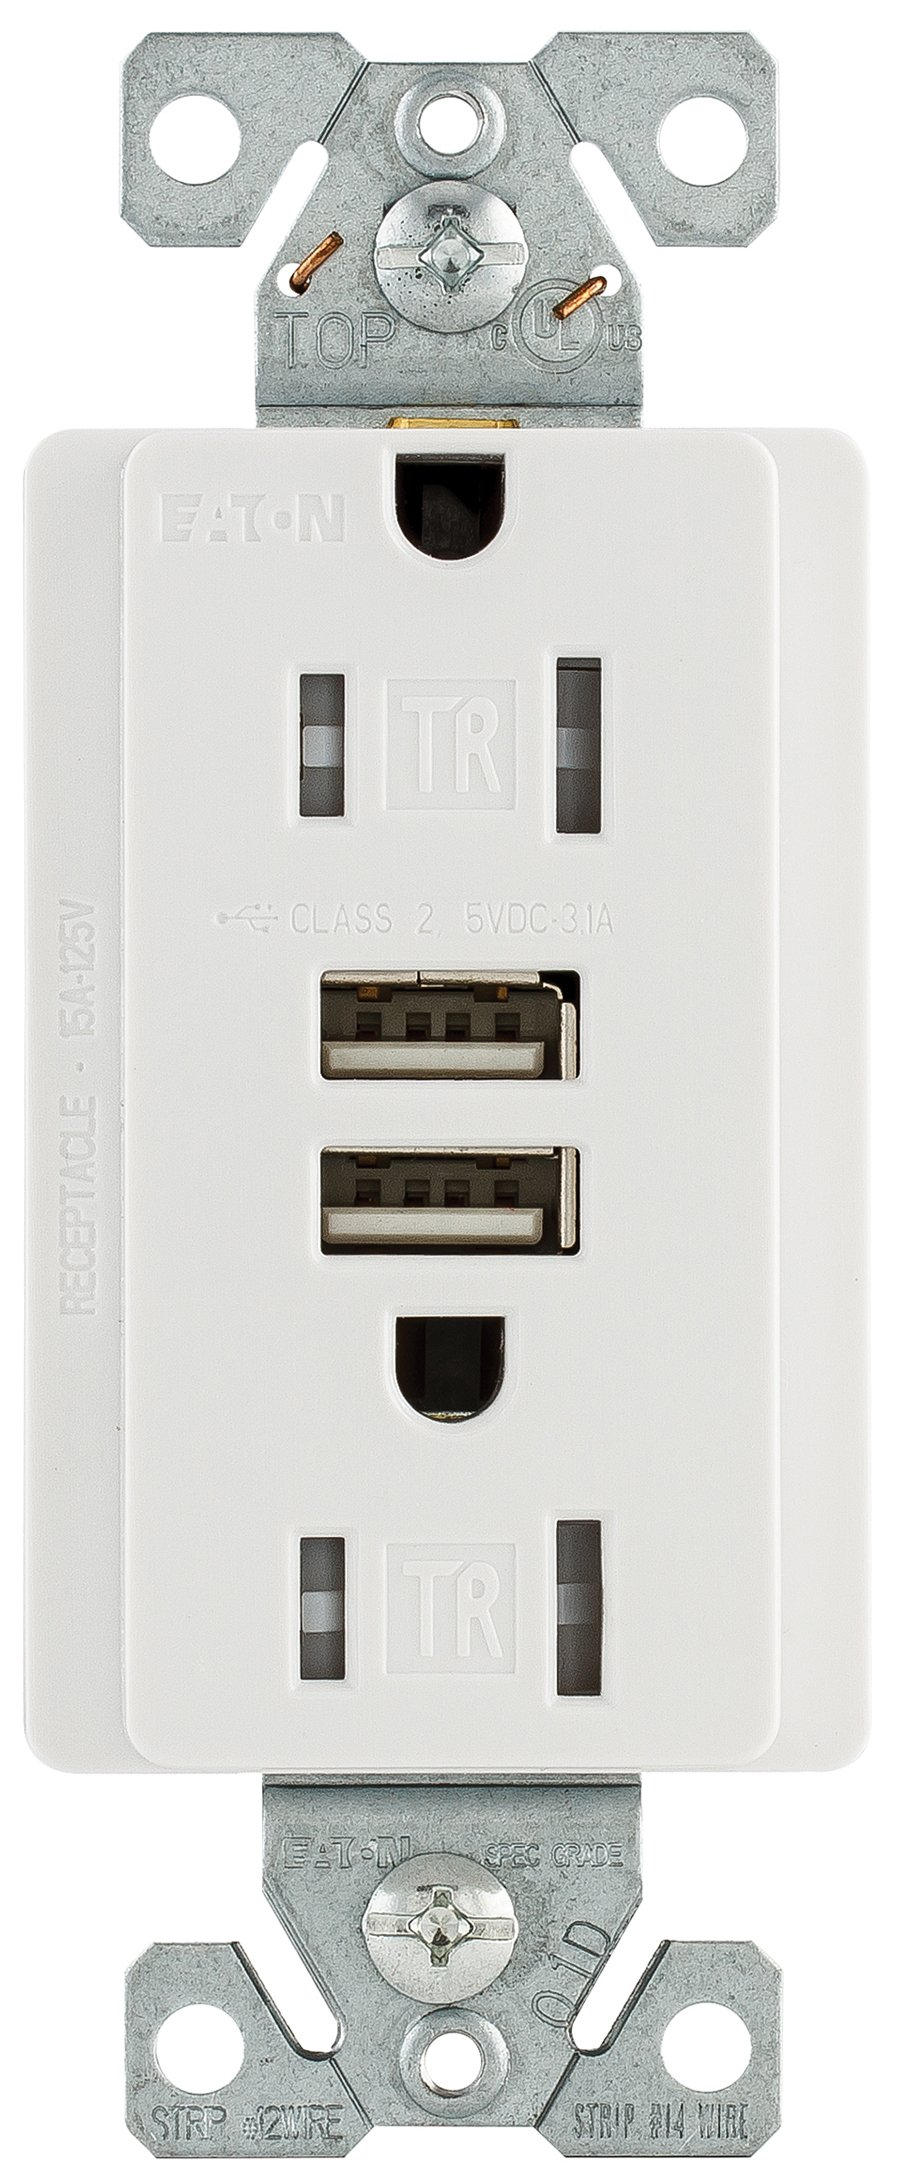 Eaton TR7755W 15 Amp 125V Combination USB 3.1A Charger with Duplex Receptacle, White